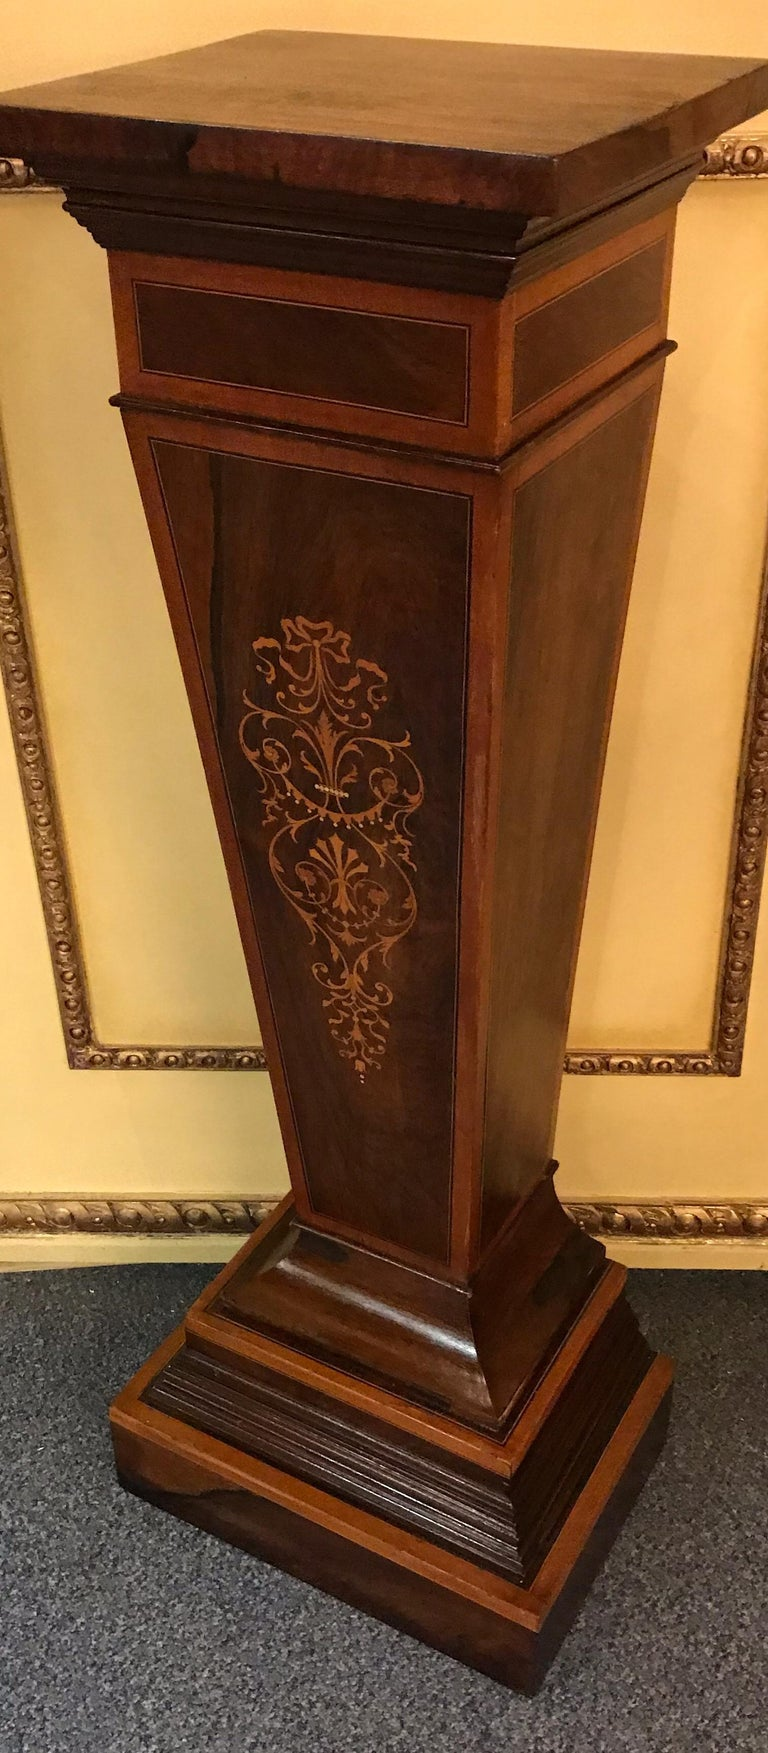 Unique English column pedestal, Victorian. Solid wood with rosewood veneer and rich inlaid work.  Profiled and stepped base leg also made of rosewood veneer.  (K-).